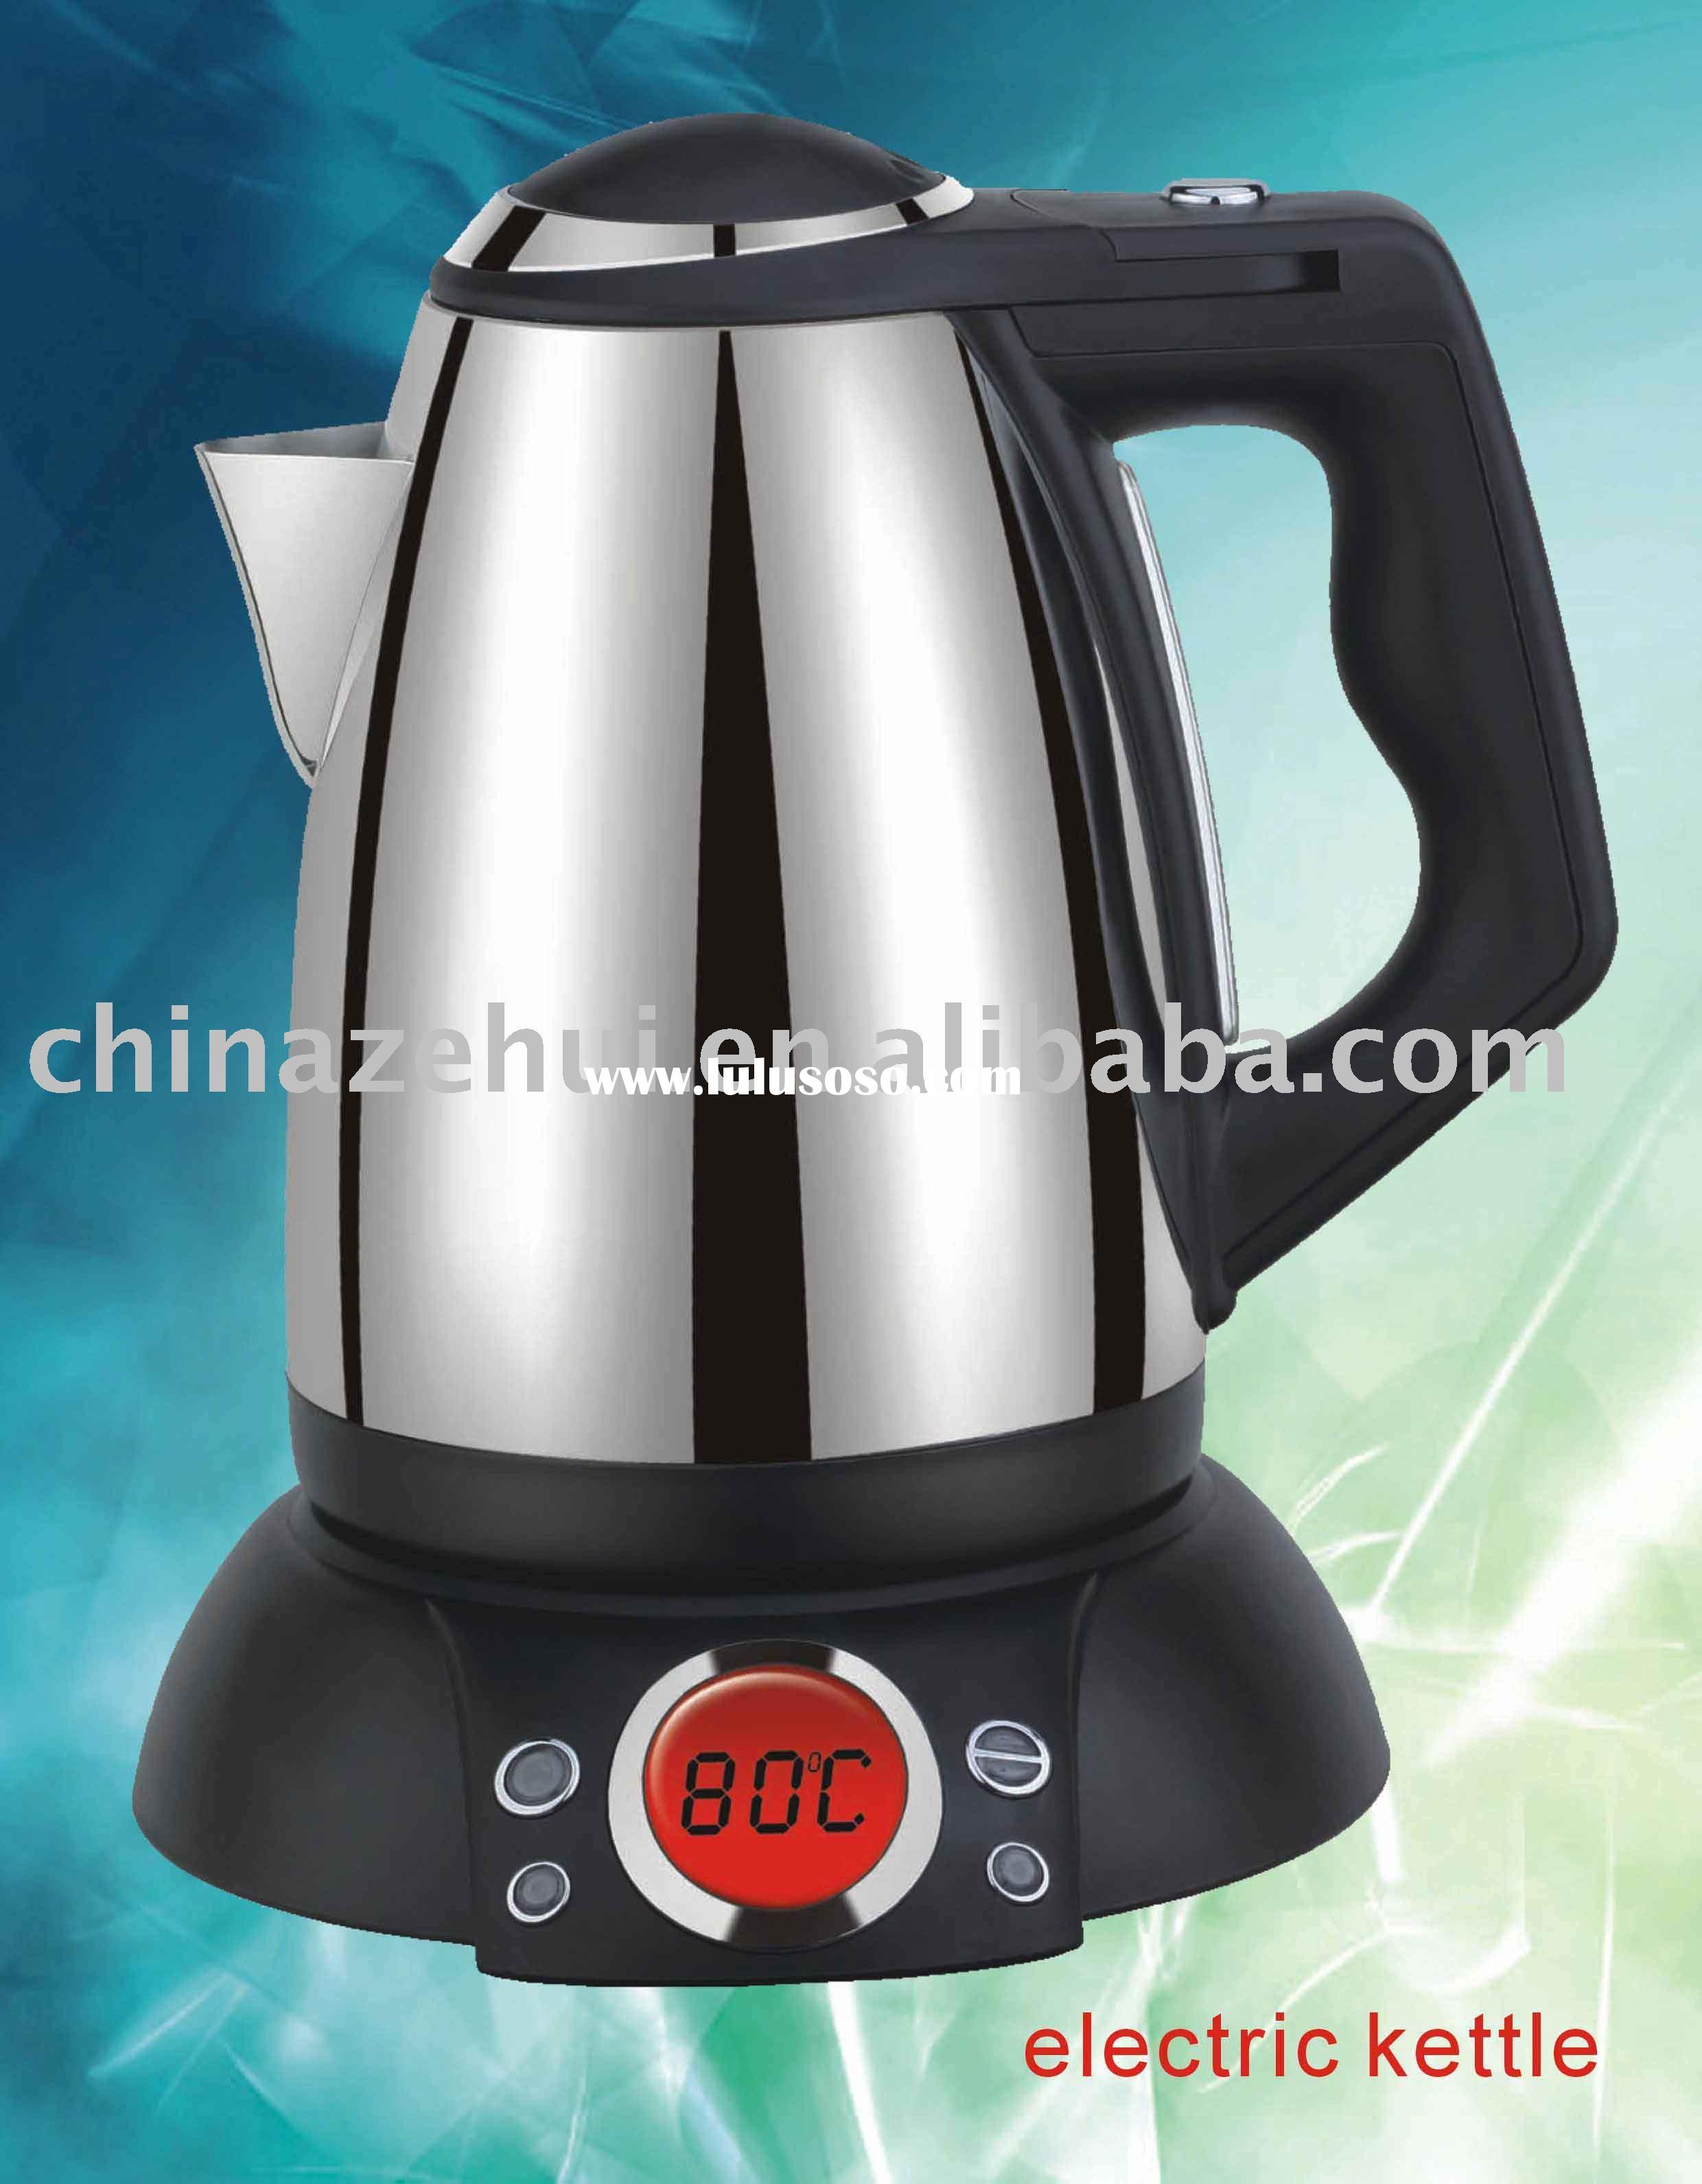 1.5L cordless electric kettle or stainless steel kettle